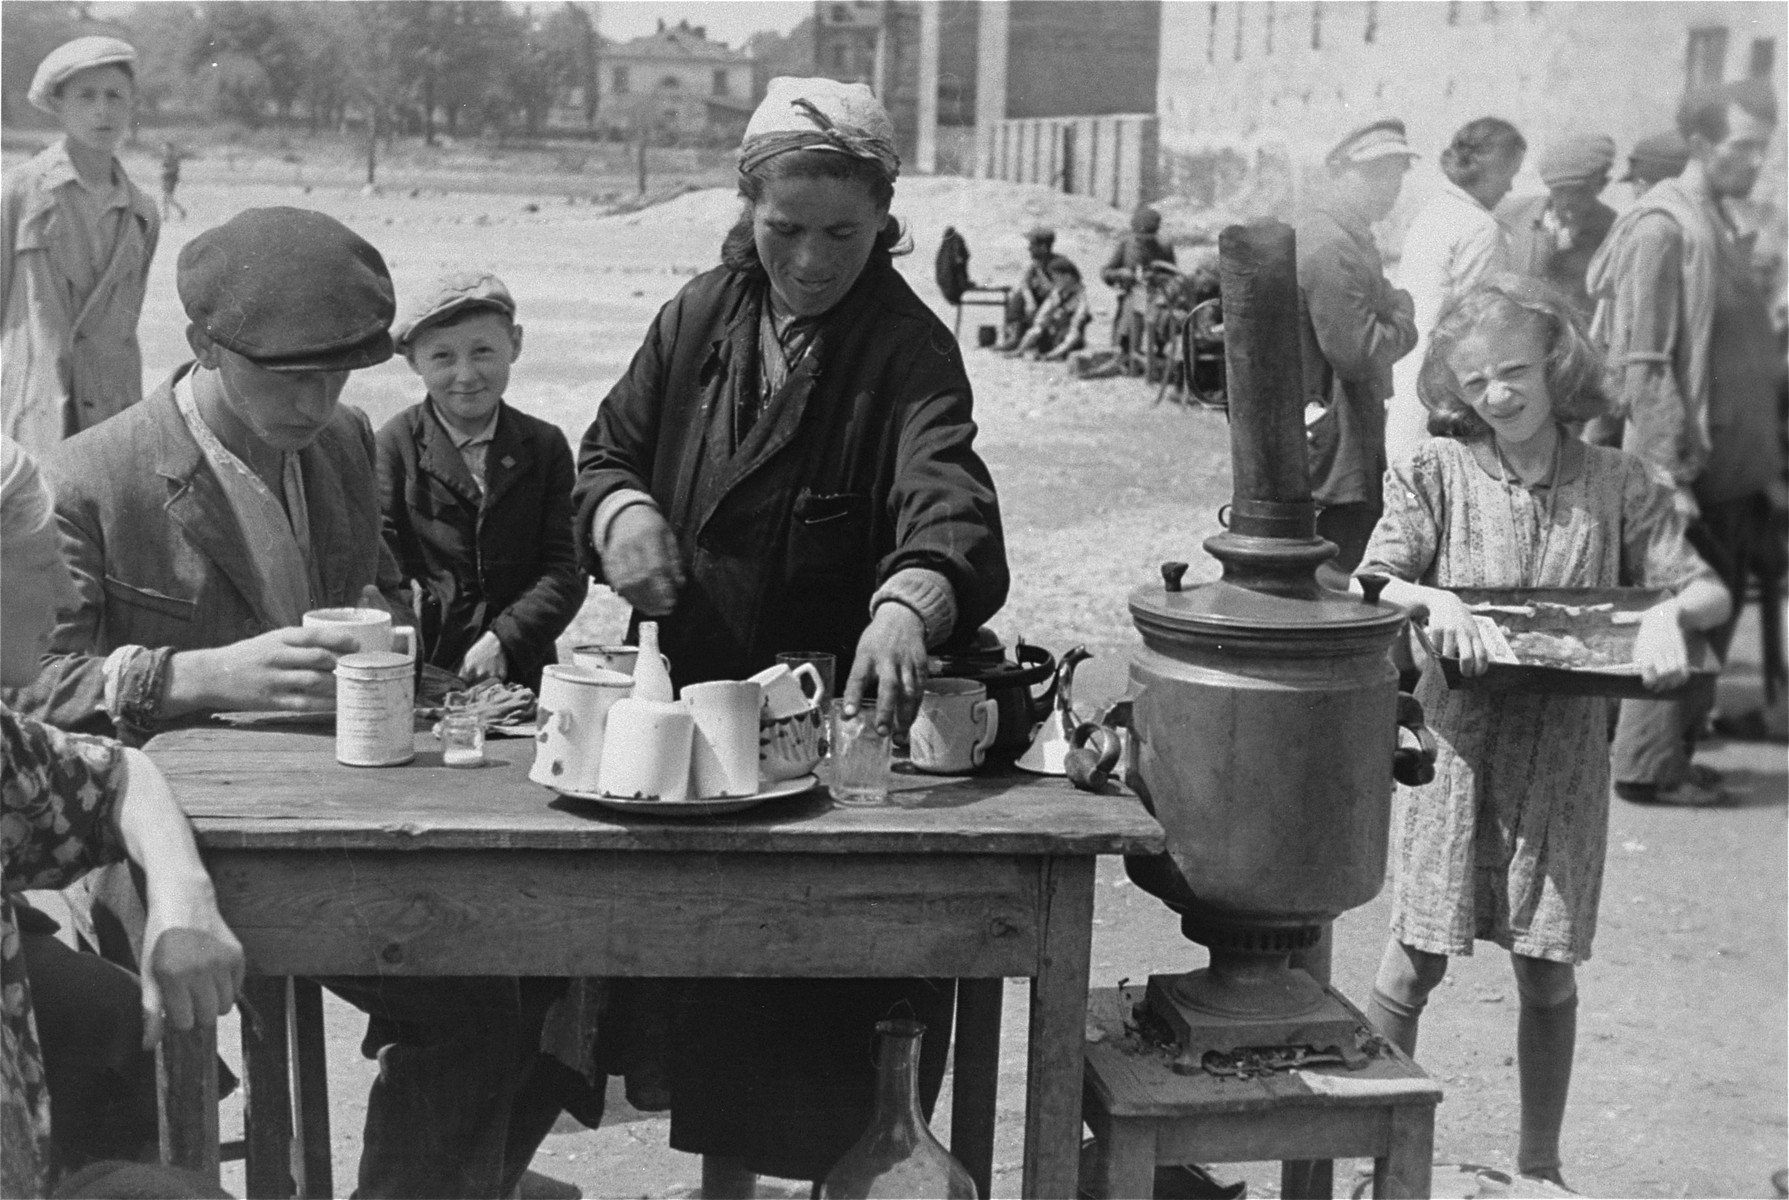 Street vendors in the Warsaw ghetto offer hot tea for sale at an open air market.